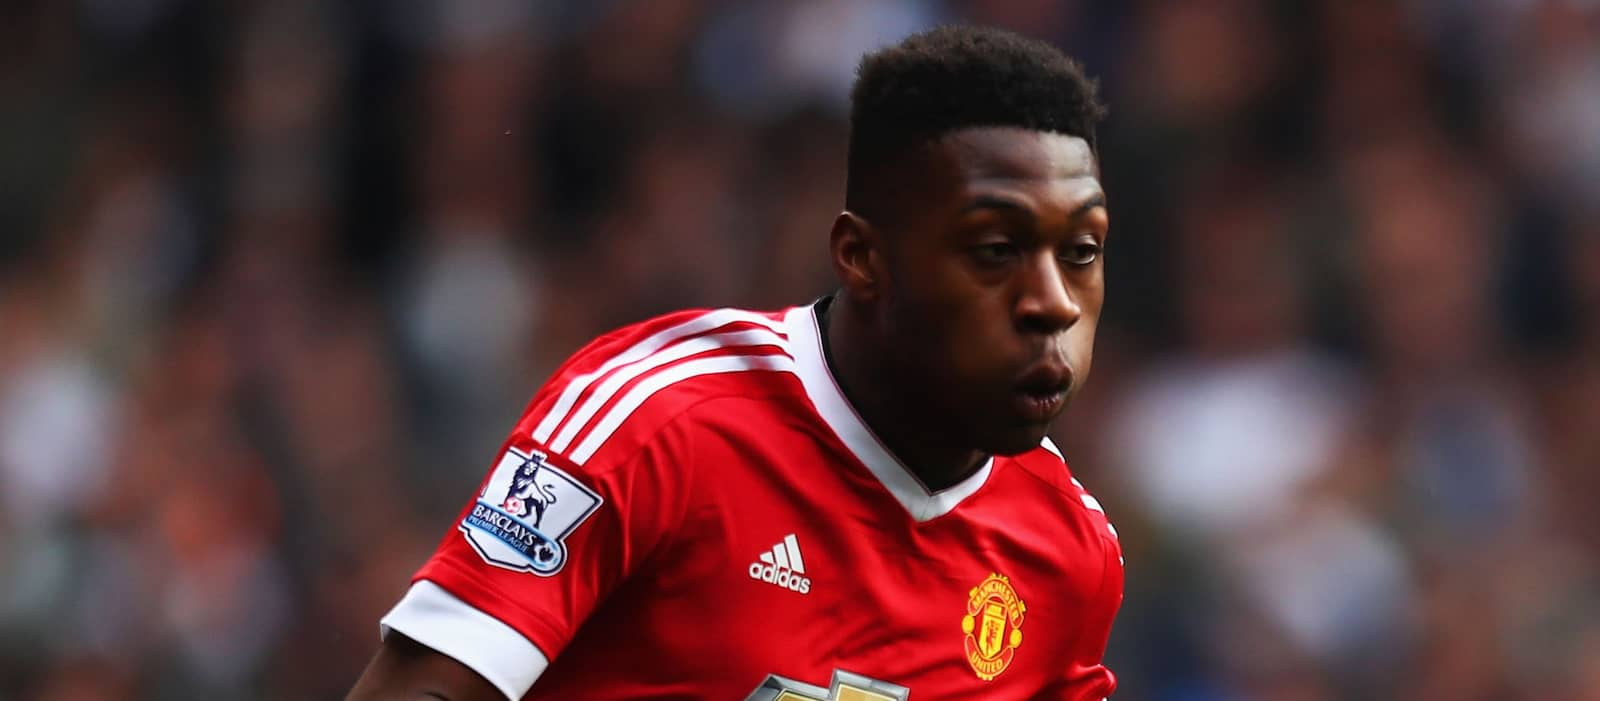 Manchester United's Timothy Fosu-Mensah signs Nike deal